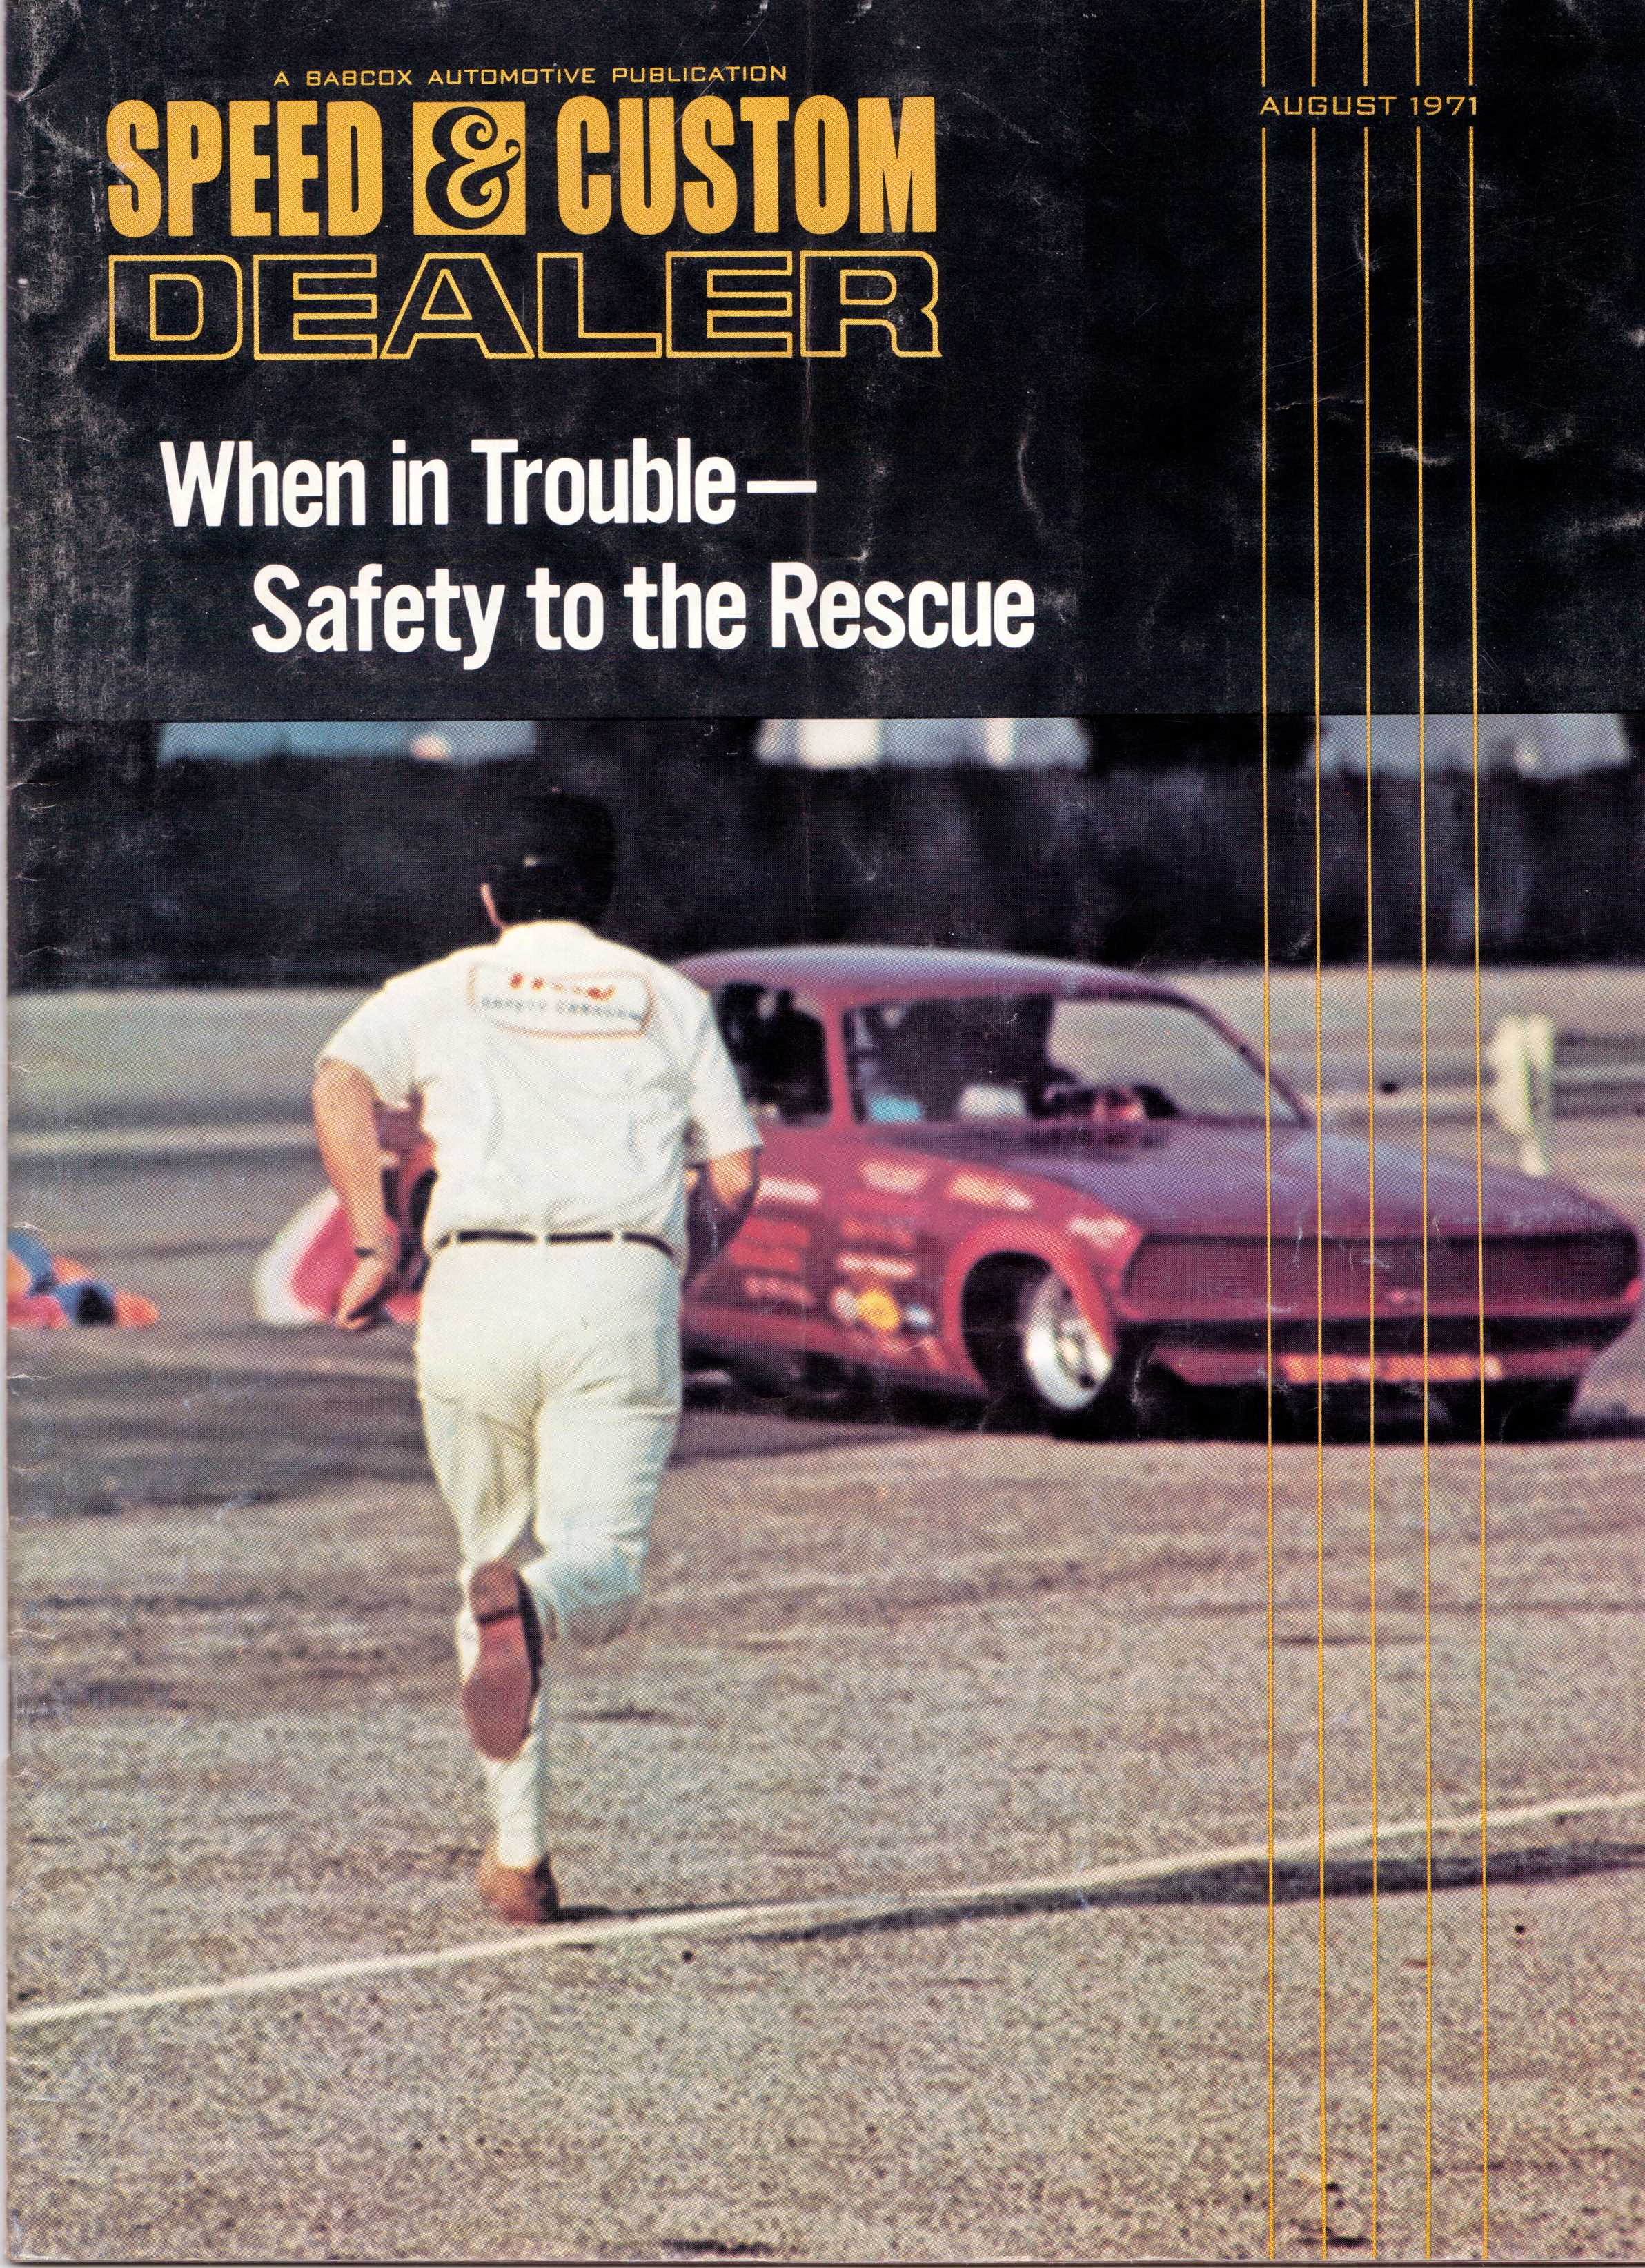 The cover of Speed & Customer Dealer August, 1971- featuring Dick Otte racing towards a drag racer at an NHRA event. The magazine featured an article about Dick and the TRW Safety Caravan